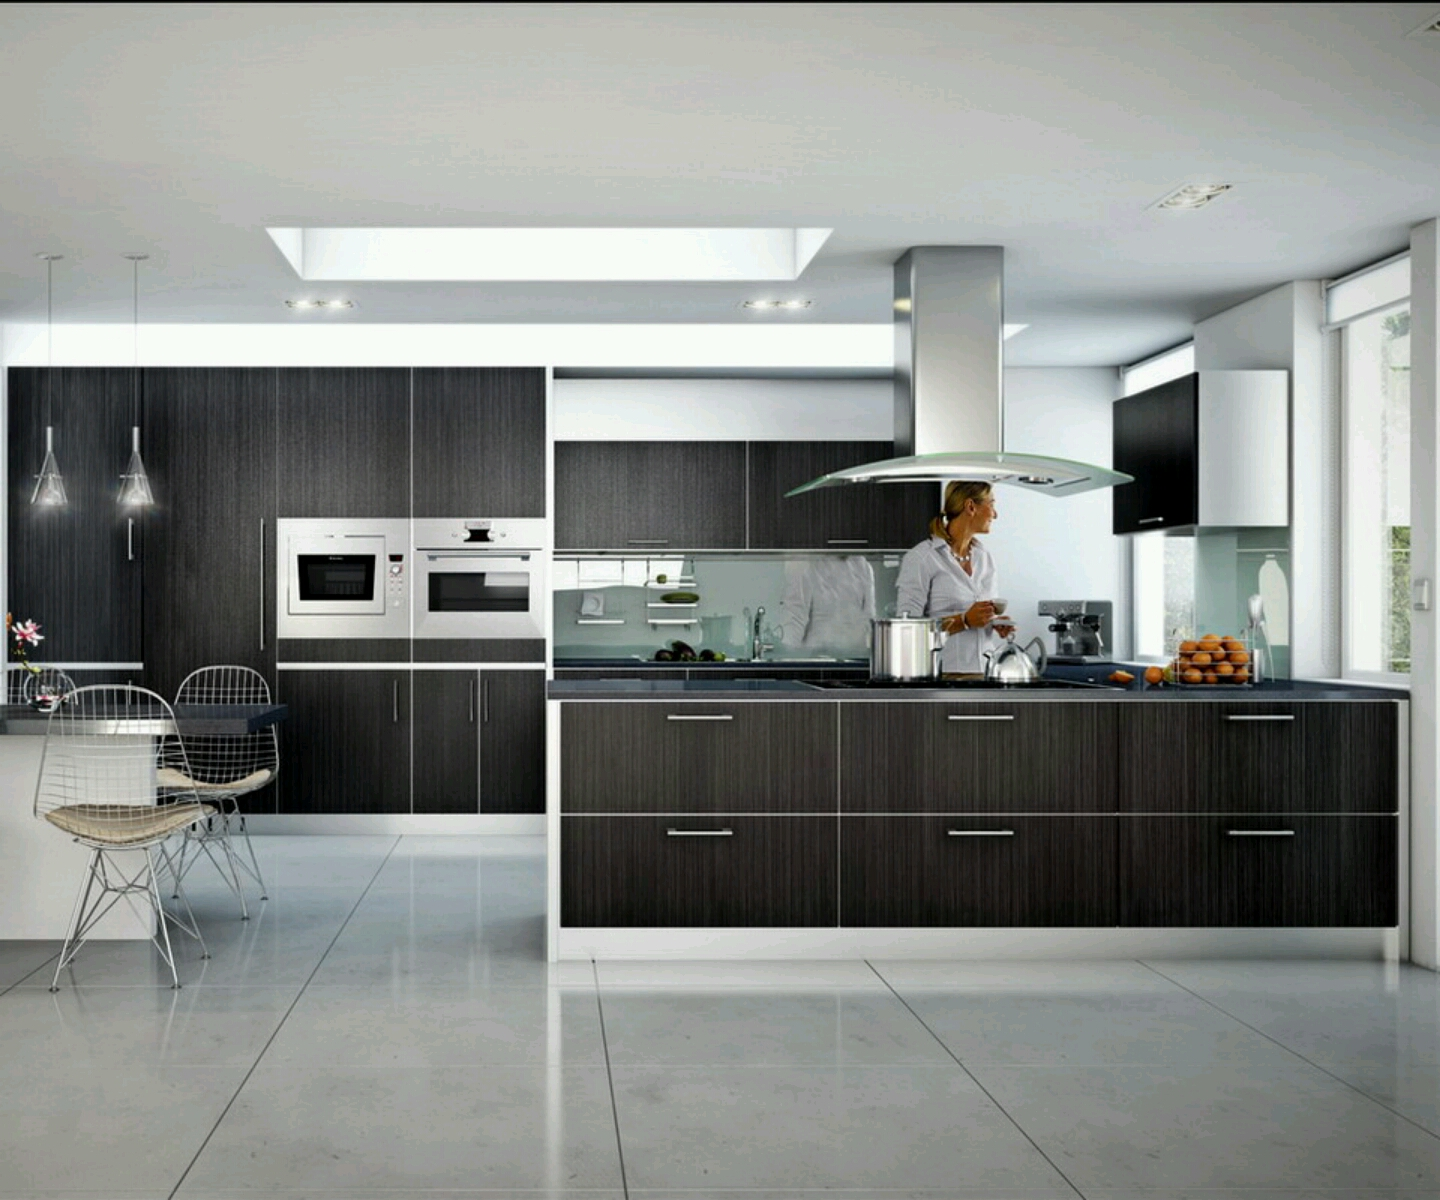 rumah rumah minimalis: Modern homes ultra modern kitchen